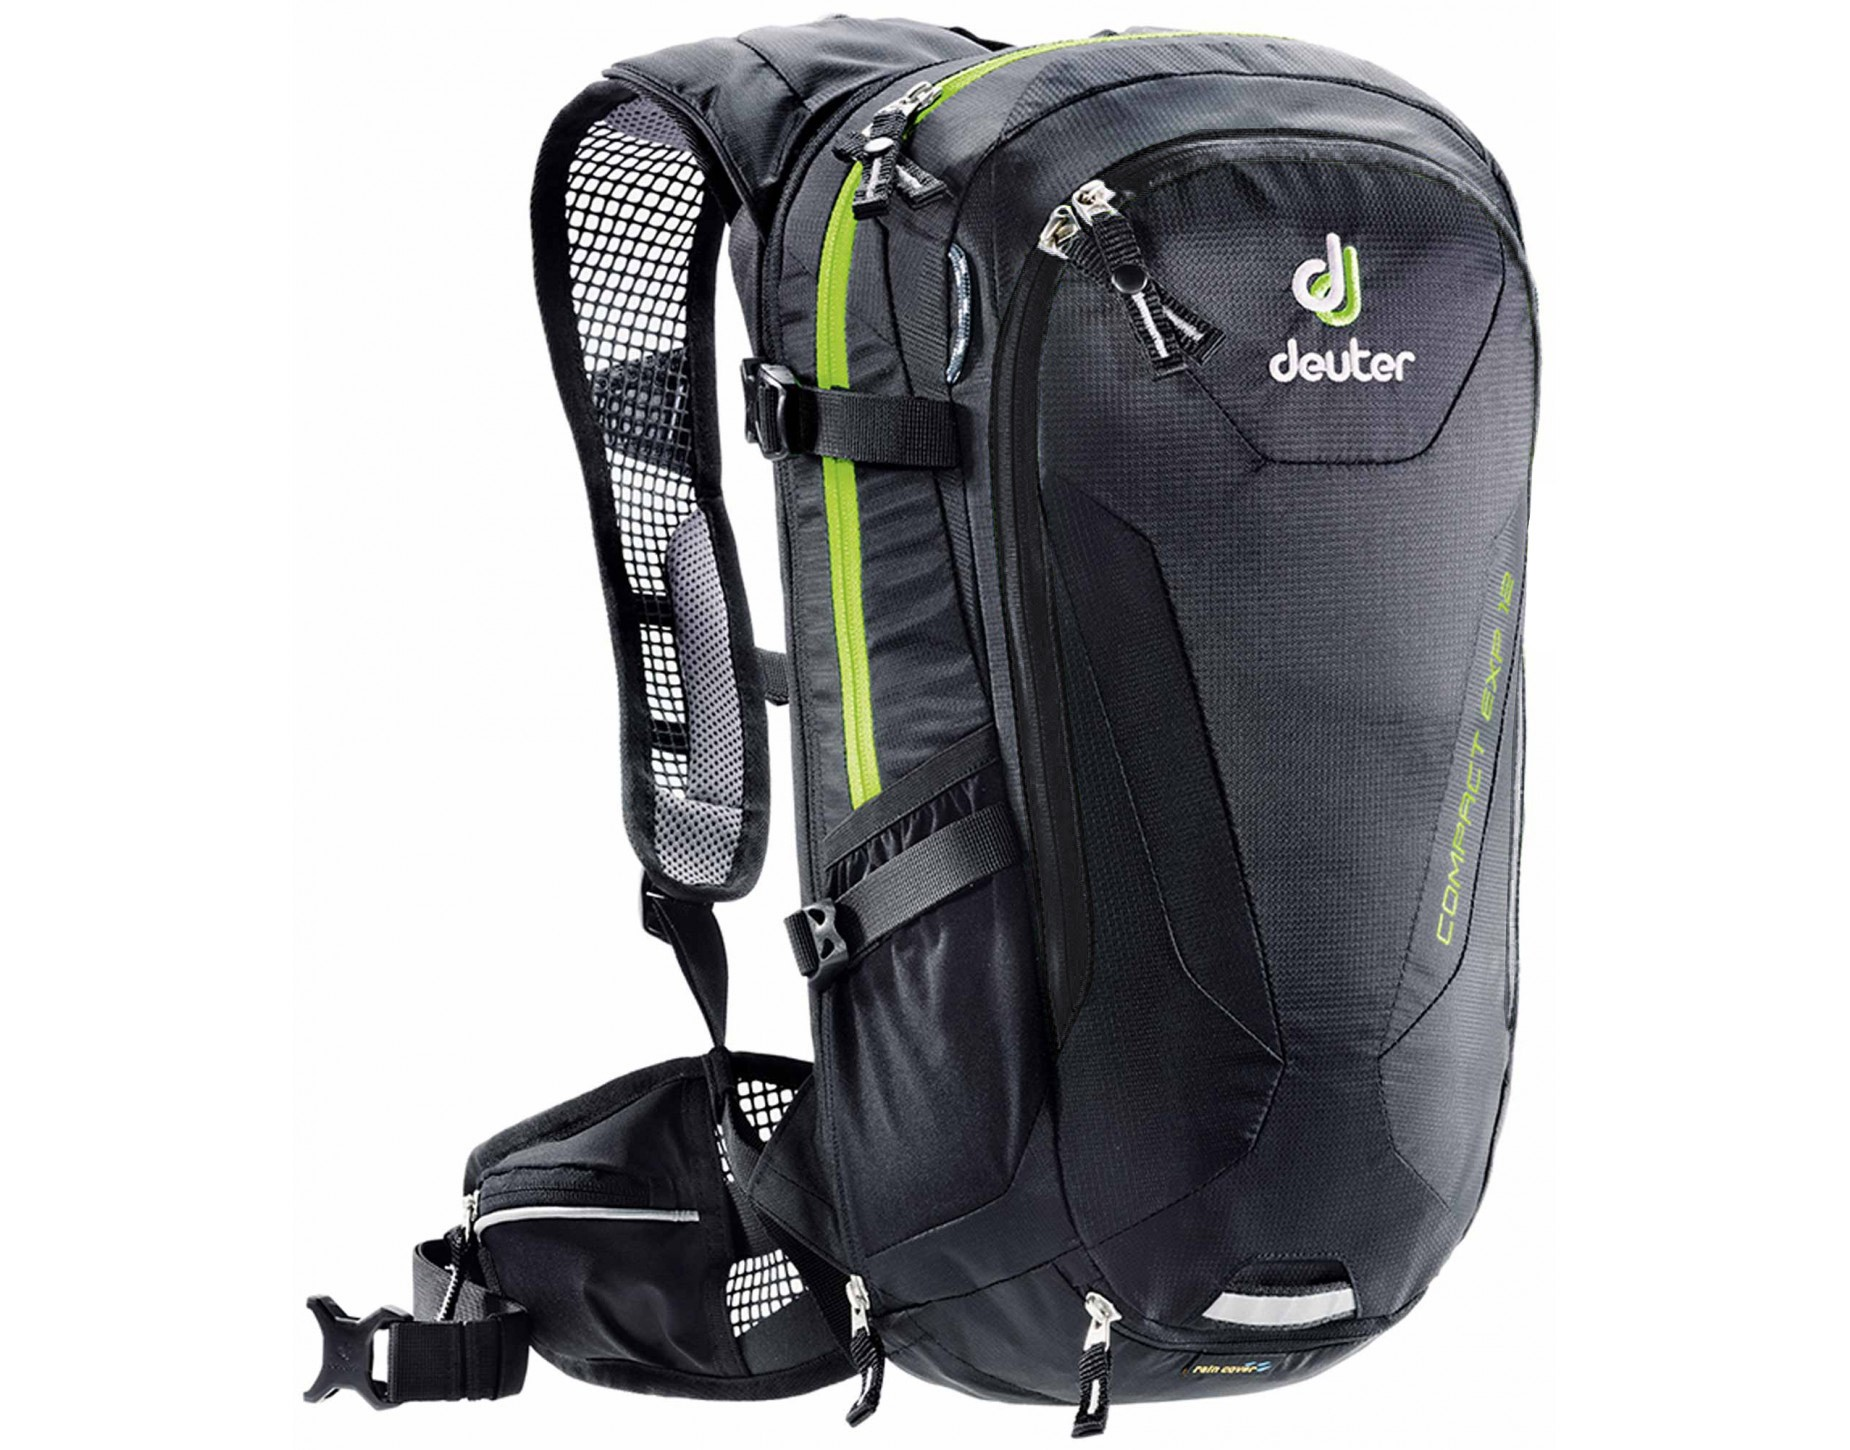 deuter compact exp 12 backpack everything you need. Black Bedroom Furniture Sets. Home Design Ideas